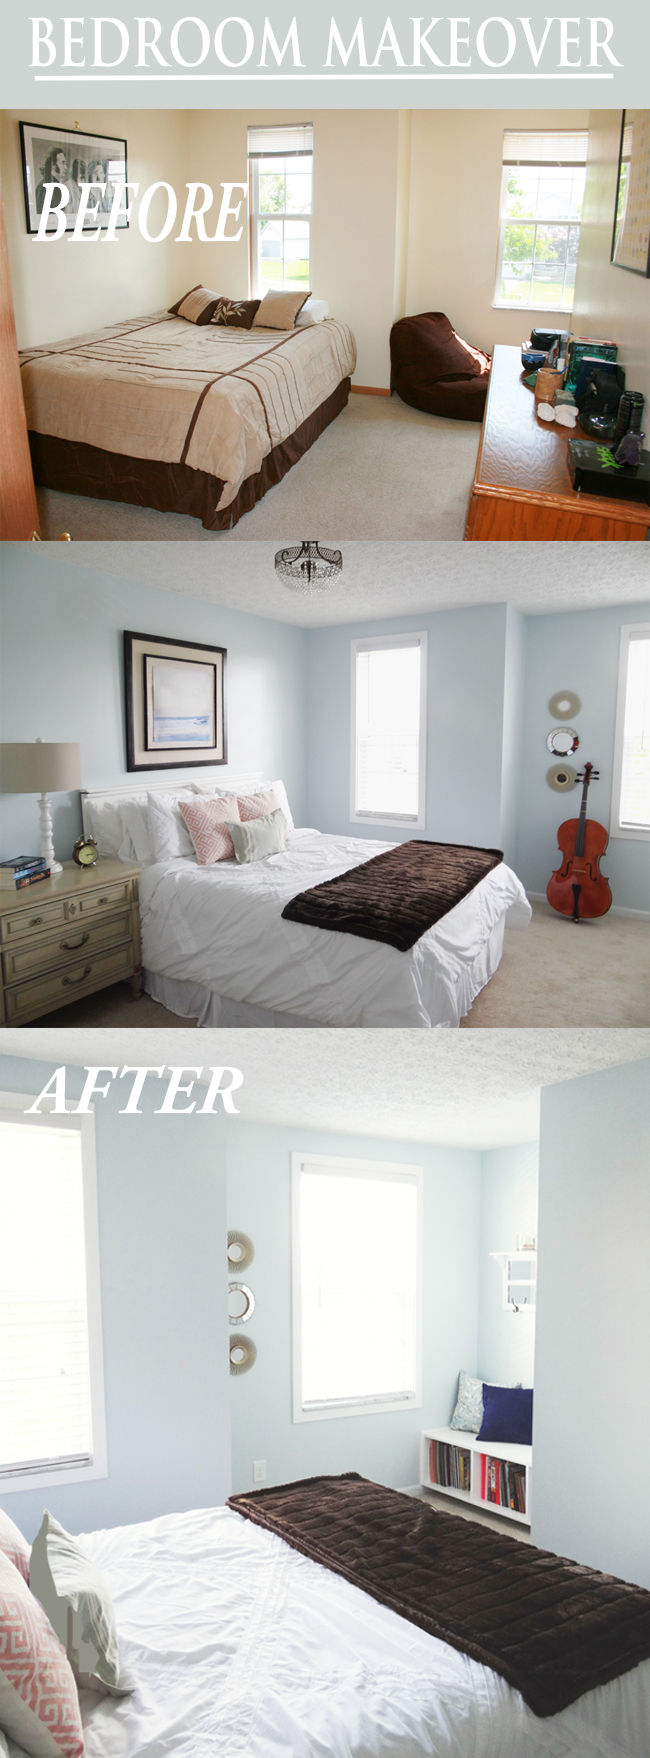 bedroom-makeover